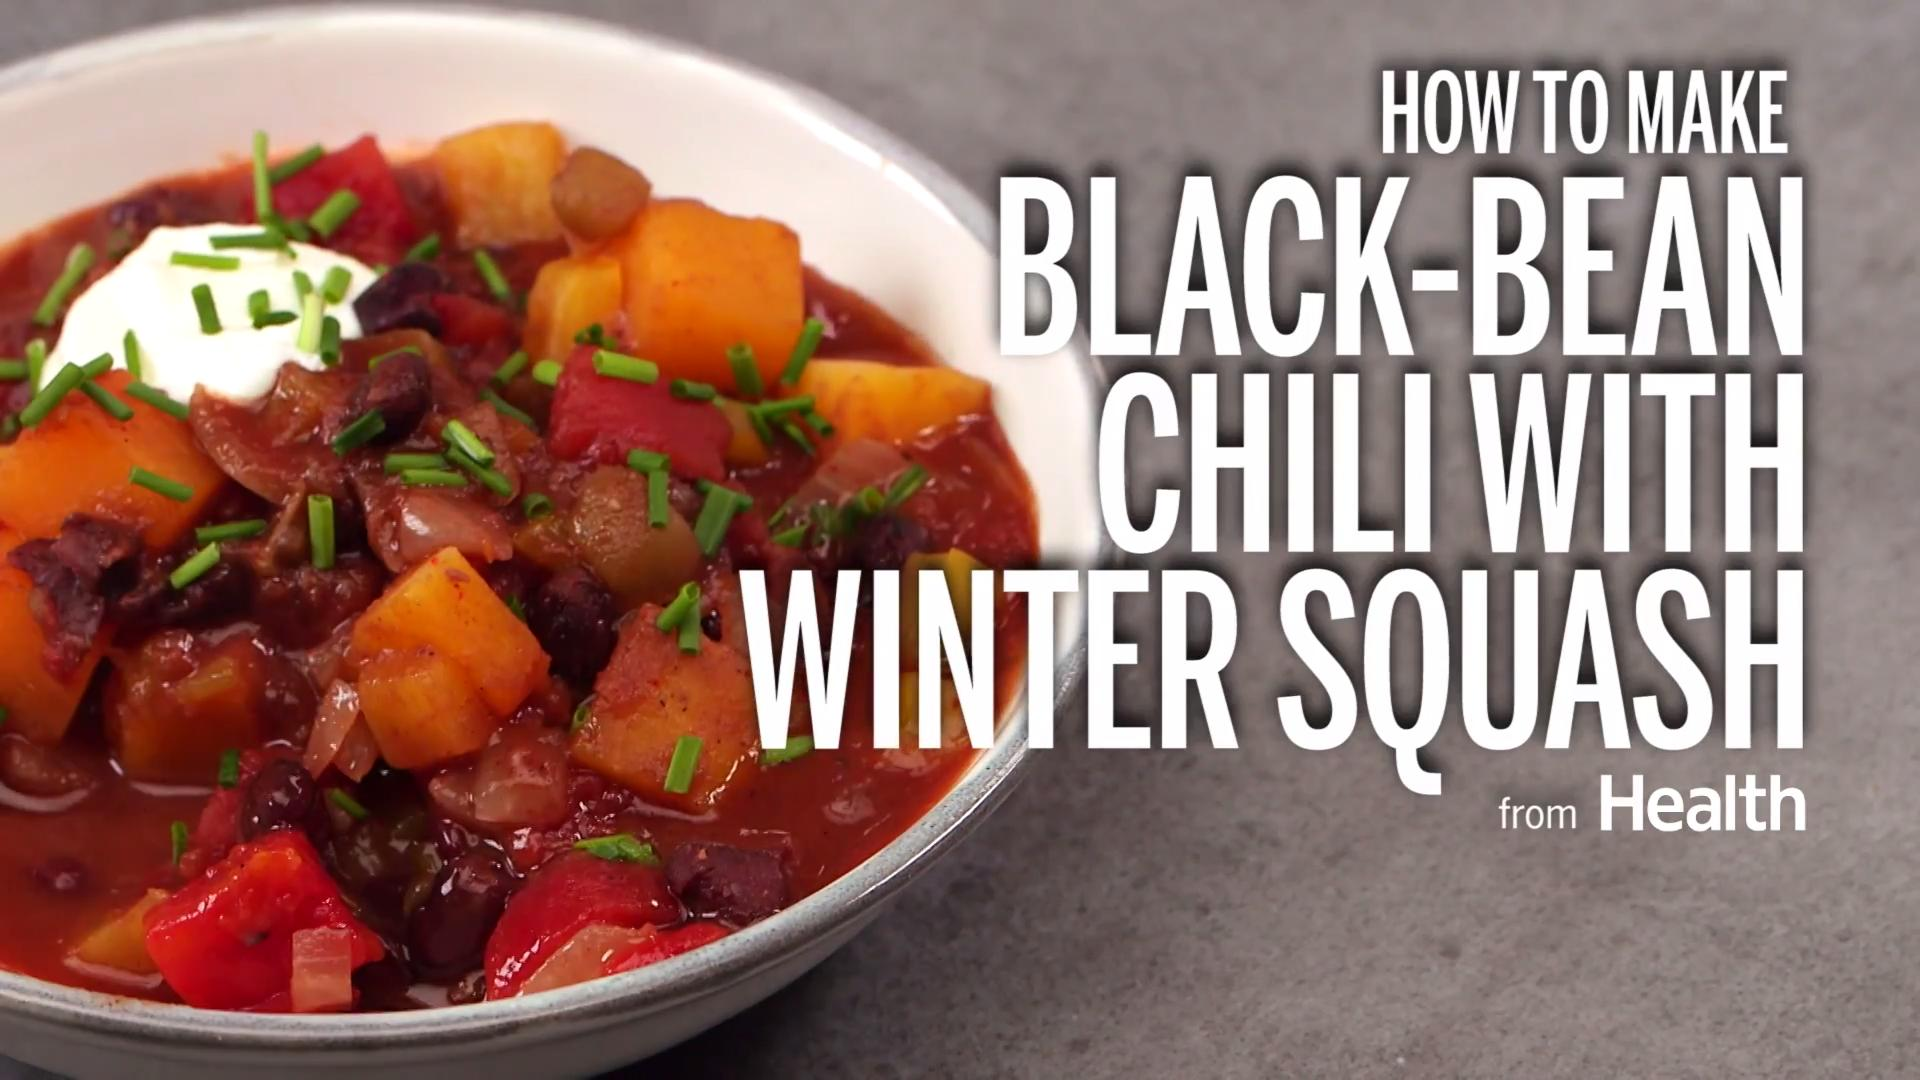 Black Bean Chili with Winter Squash